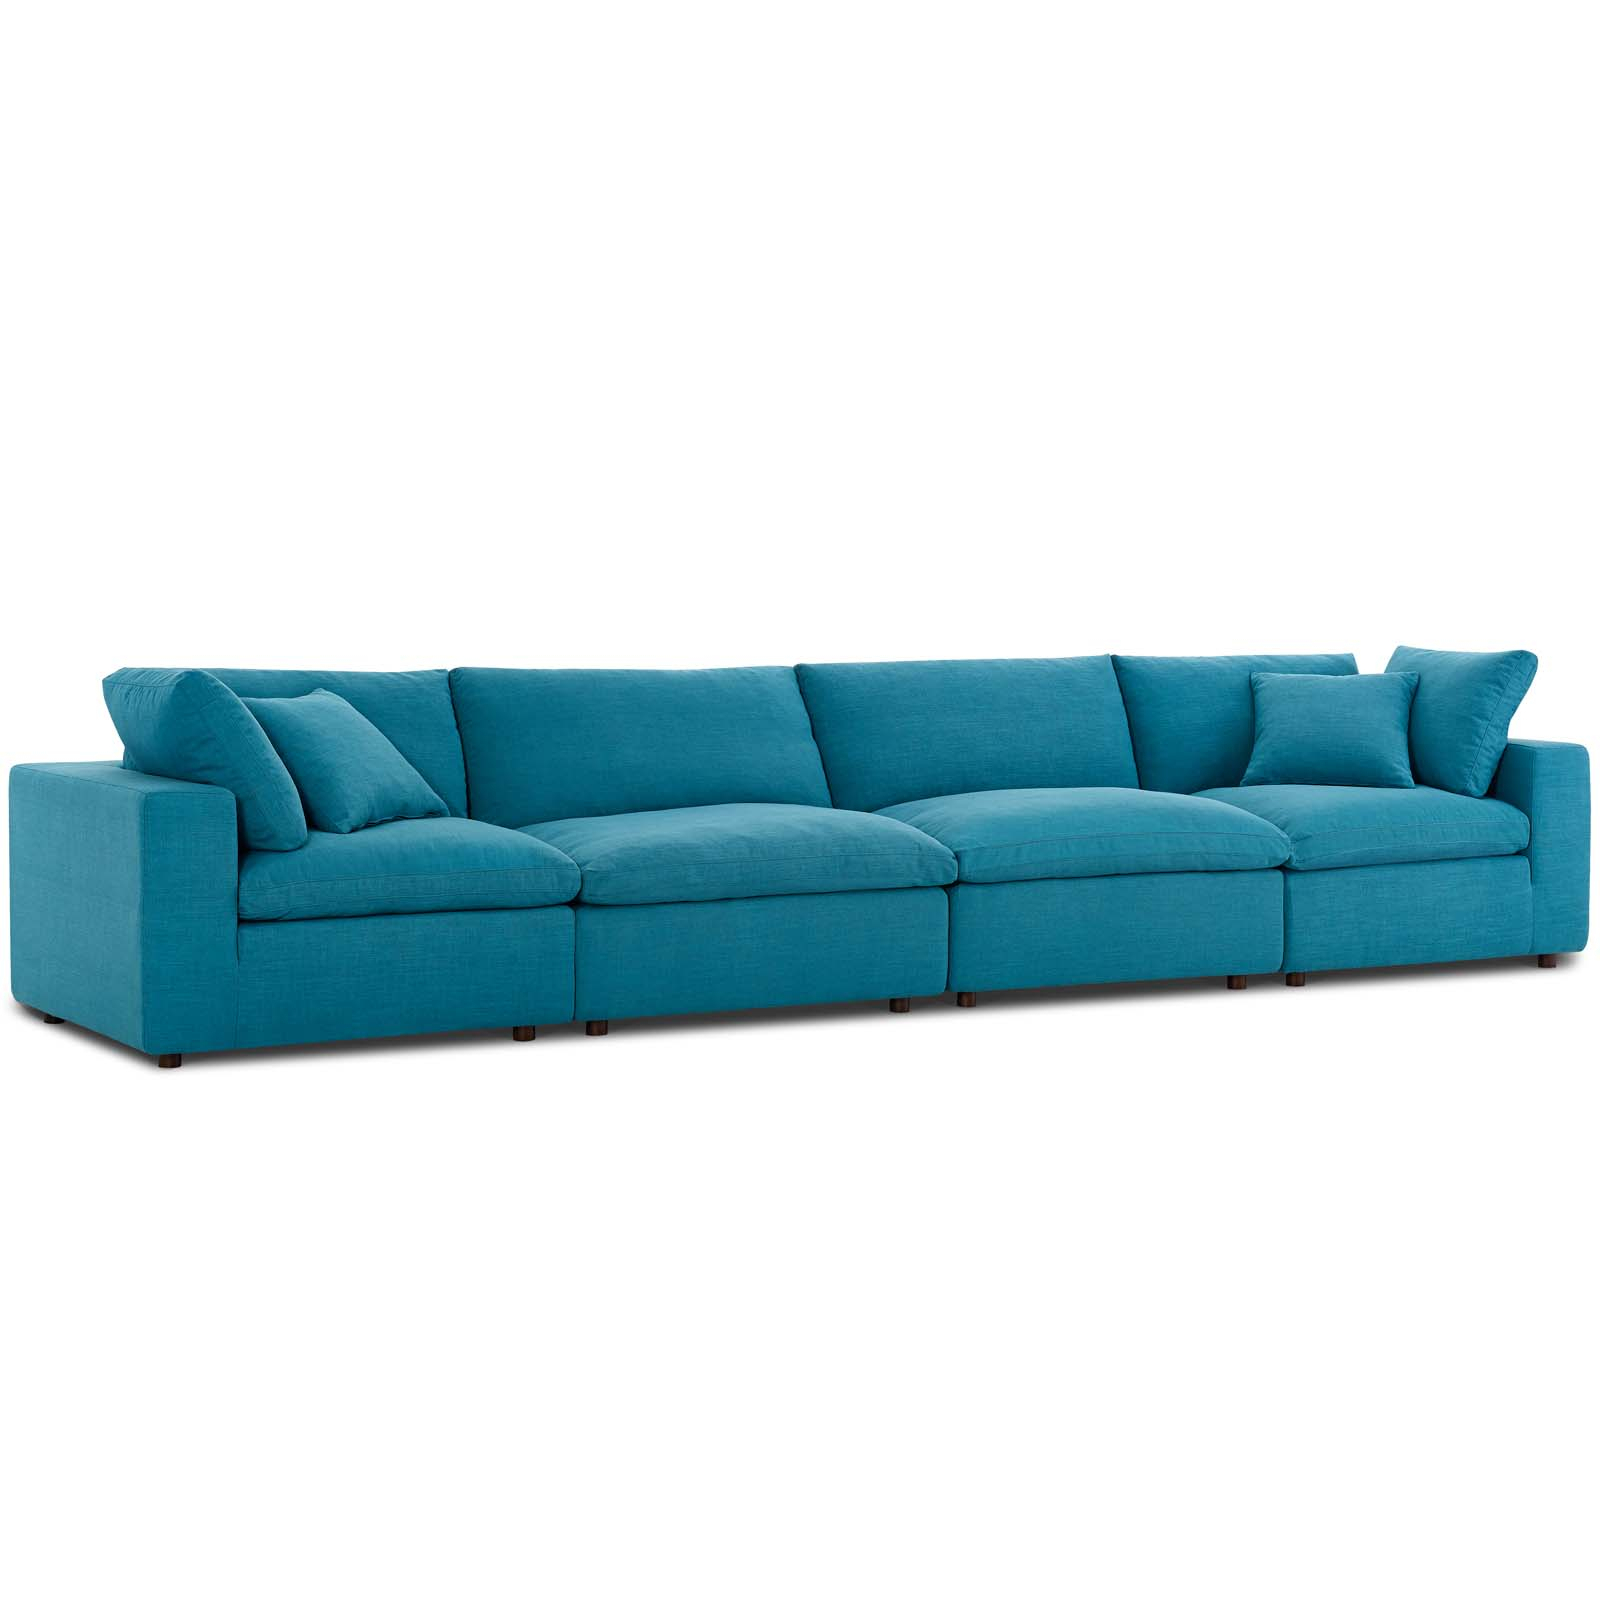 Commix Down Filled Overstuffed 4 Piece Sectional Sofa Set Teal In Down Filled Sectional Sofas (View 13 of 15)